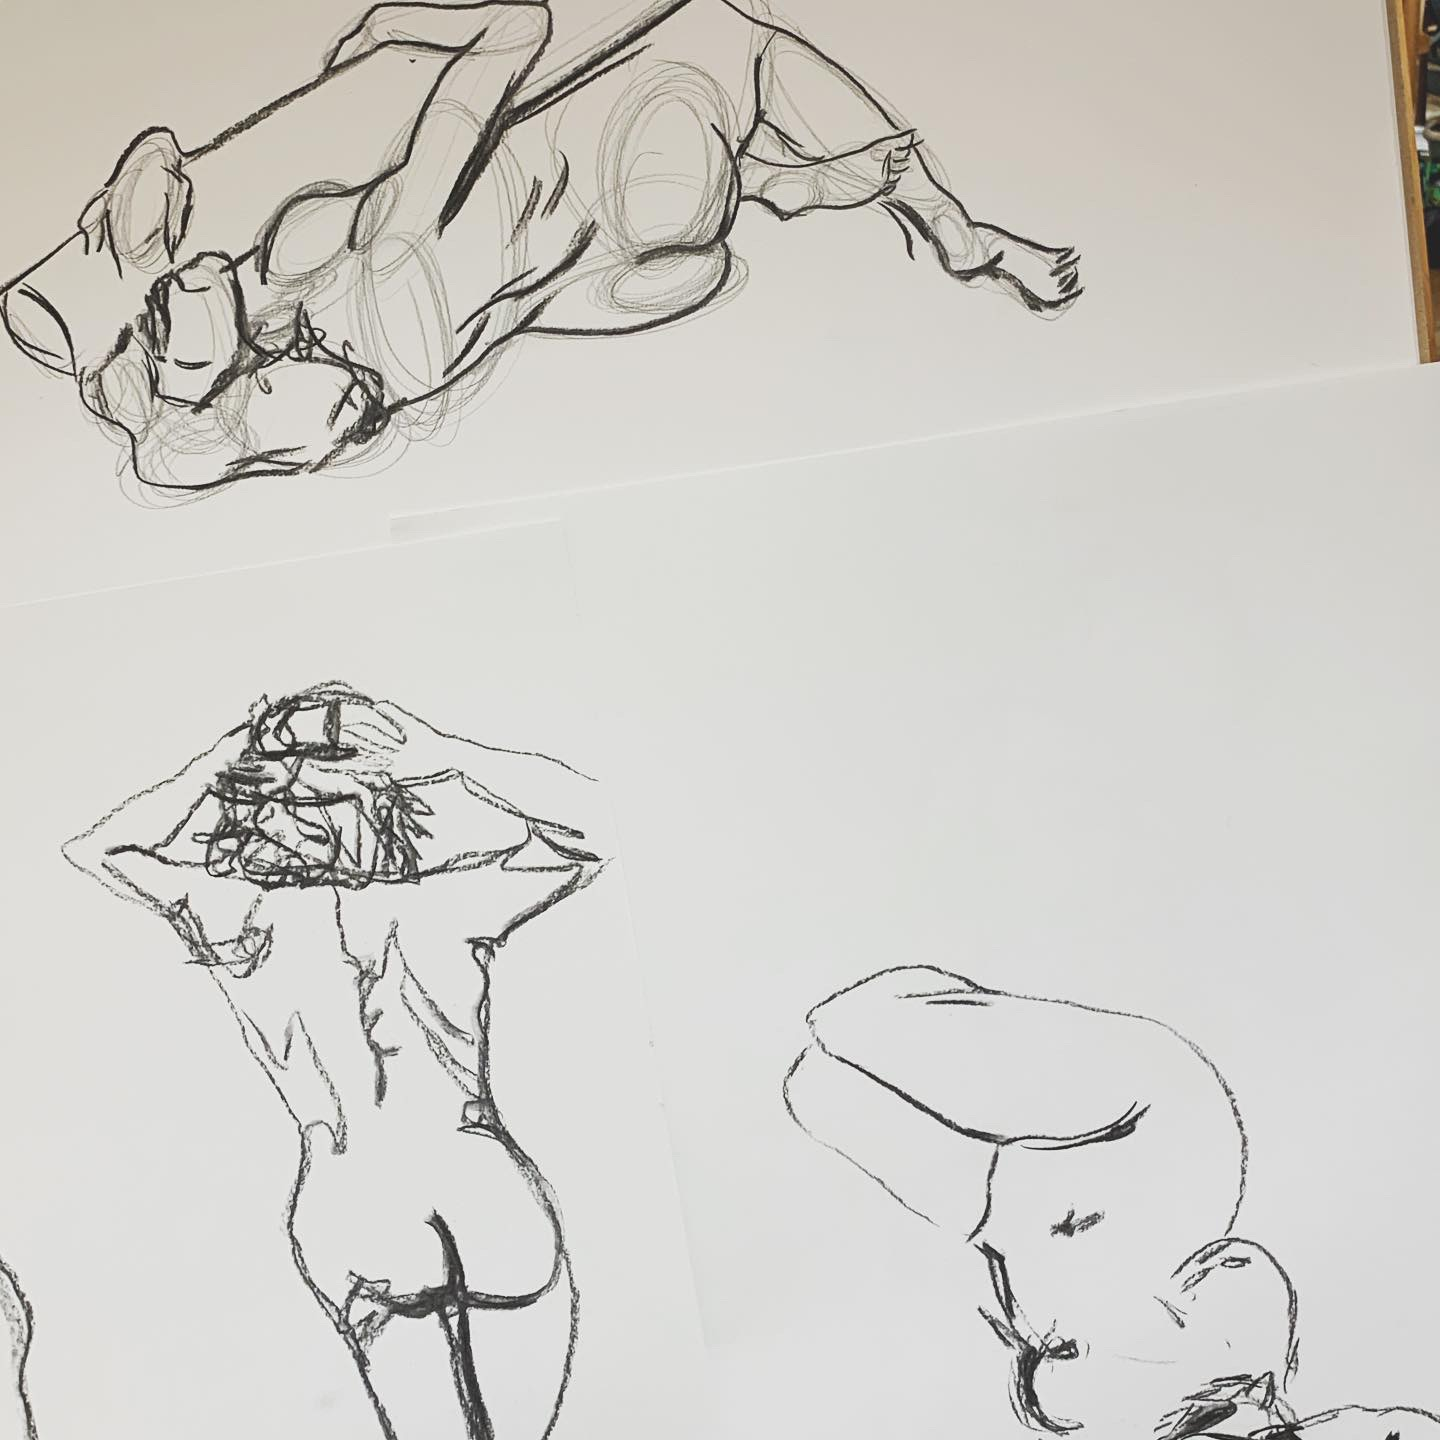 Some of the outputs of me drawing what I saw in front of me